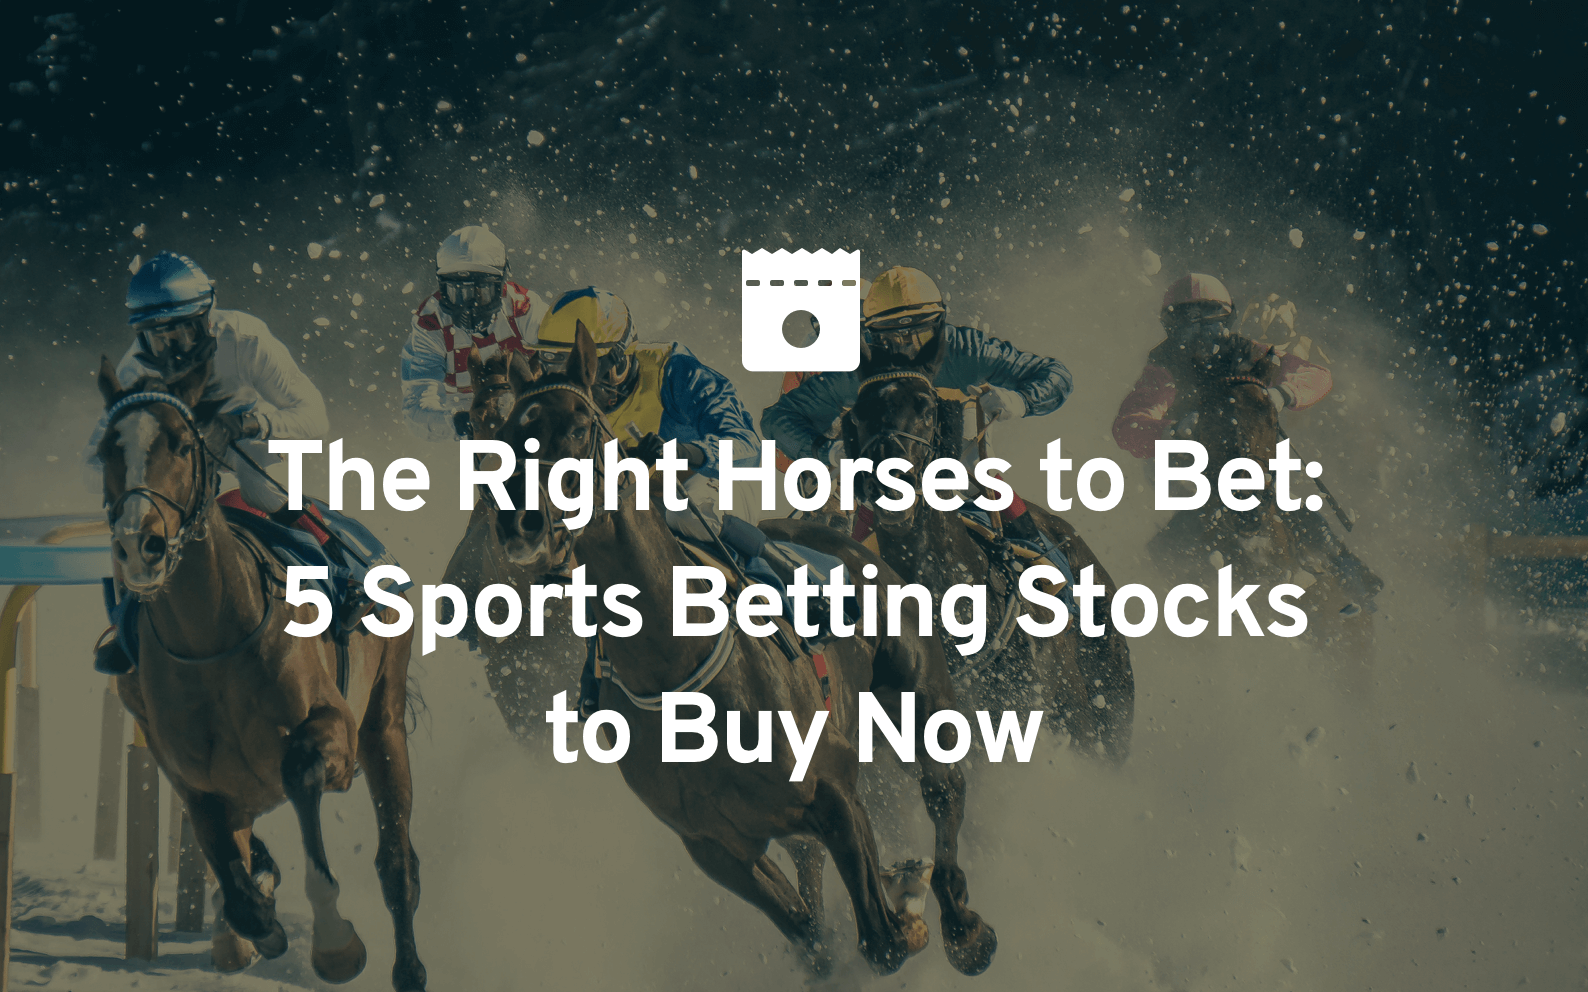 5 Sports Betting Stocks